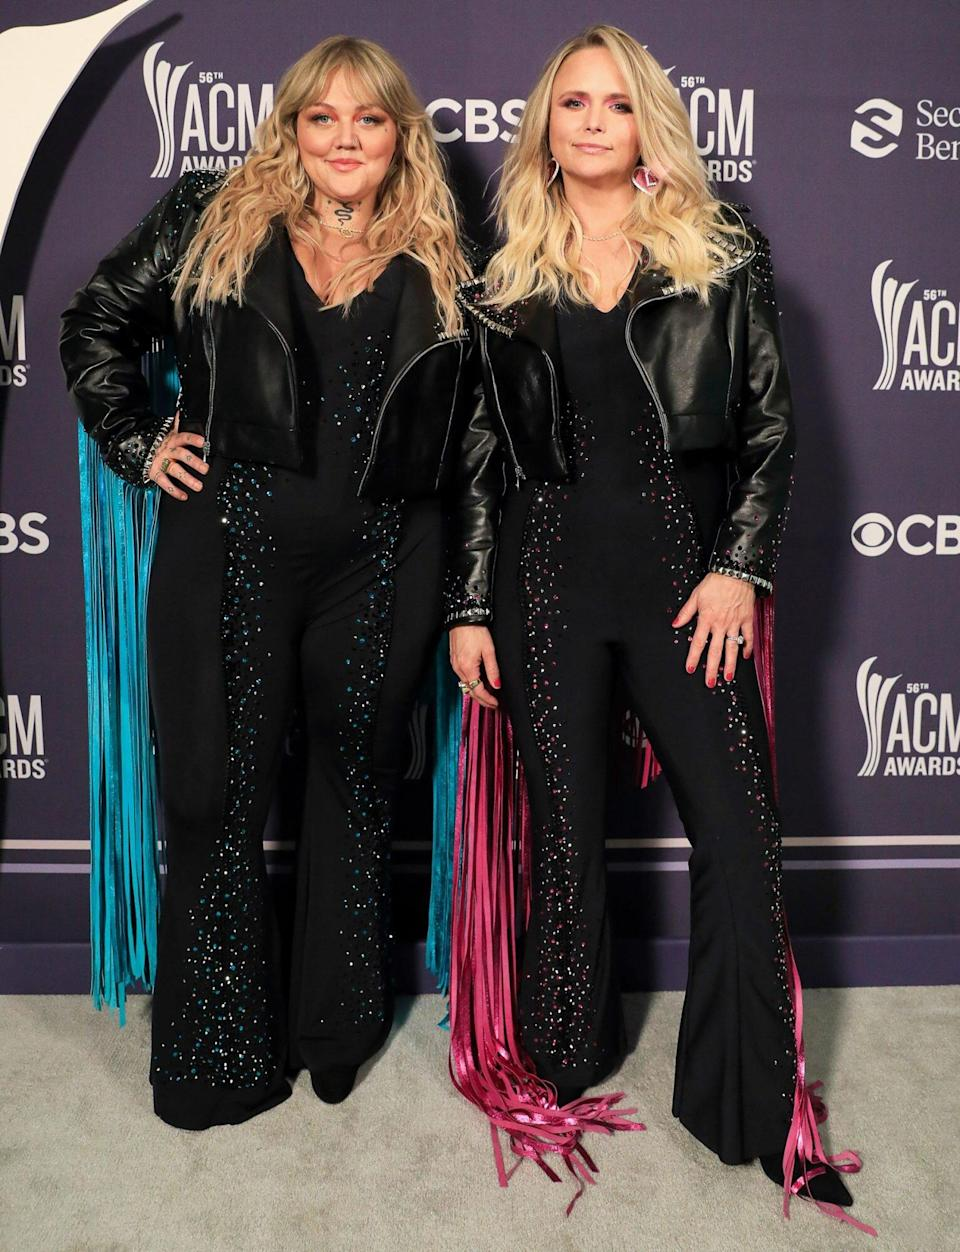 Elle King and Miranda Lambert arrive at the 56TH ACADEMY OF COUNTRY MUSIC AWARDS